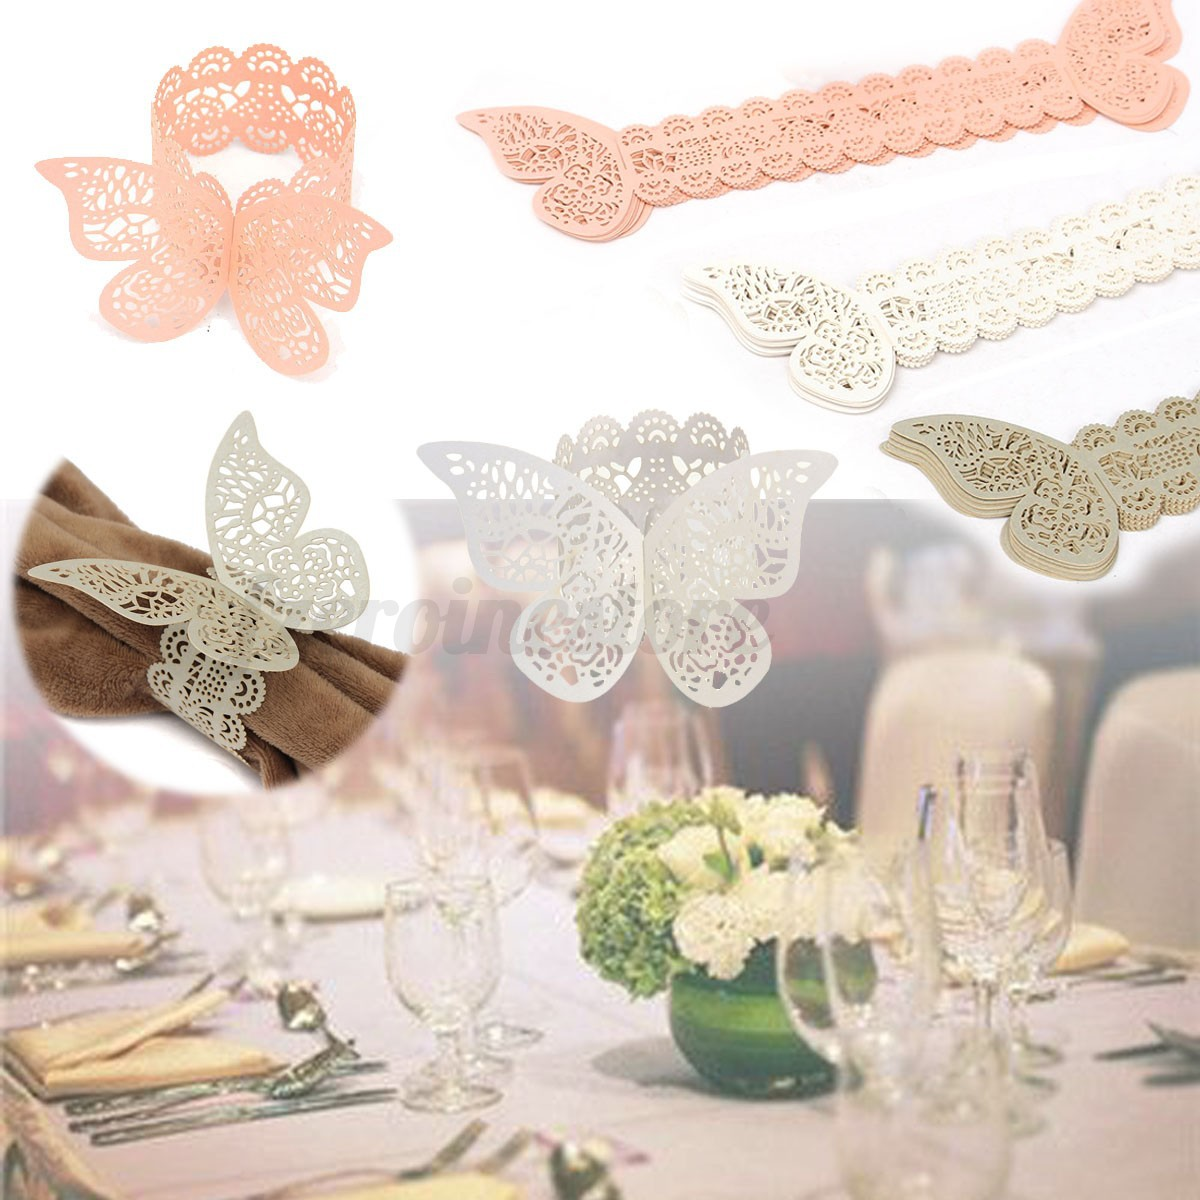 12x serviettenringe set serviettenhalter papier schmetterling hochzeit tischdeko ebay. Black Bedroom Furniture Sets. Home Design Ideas